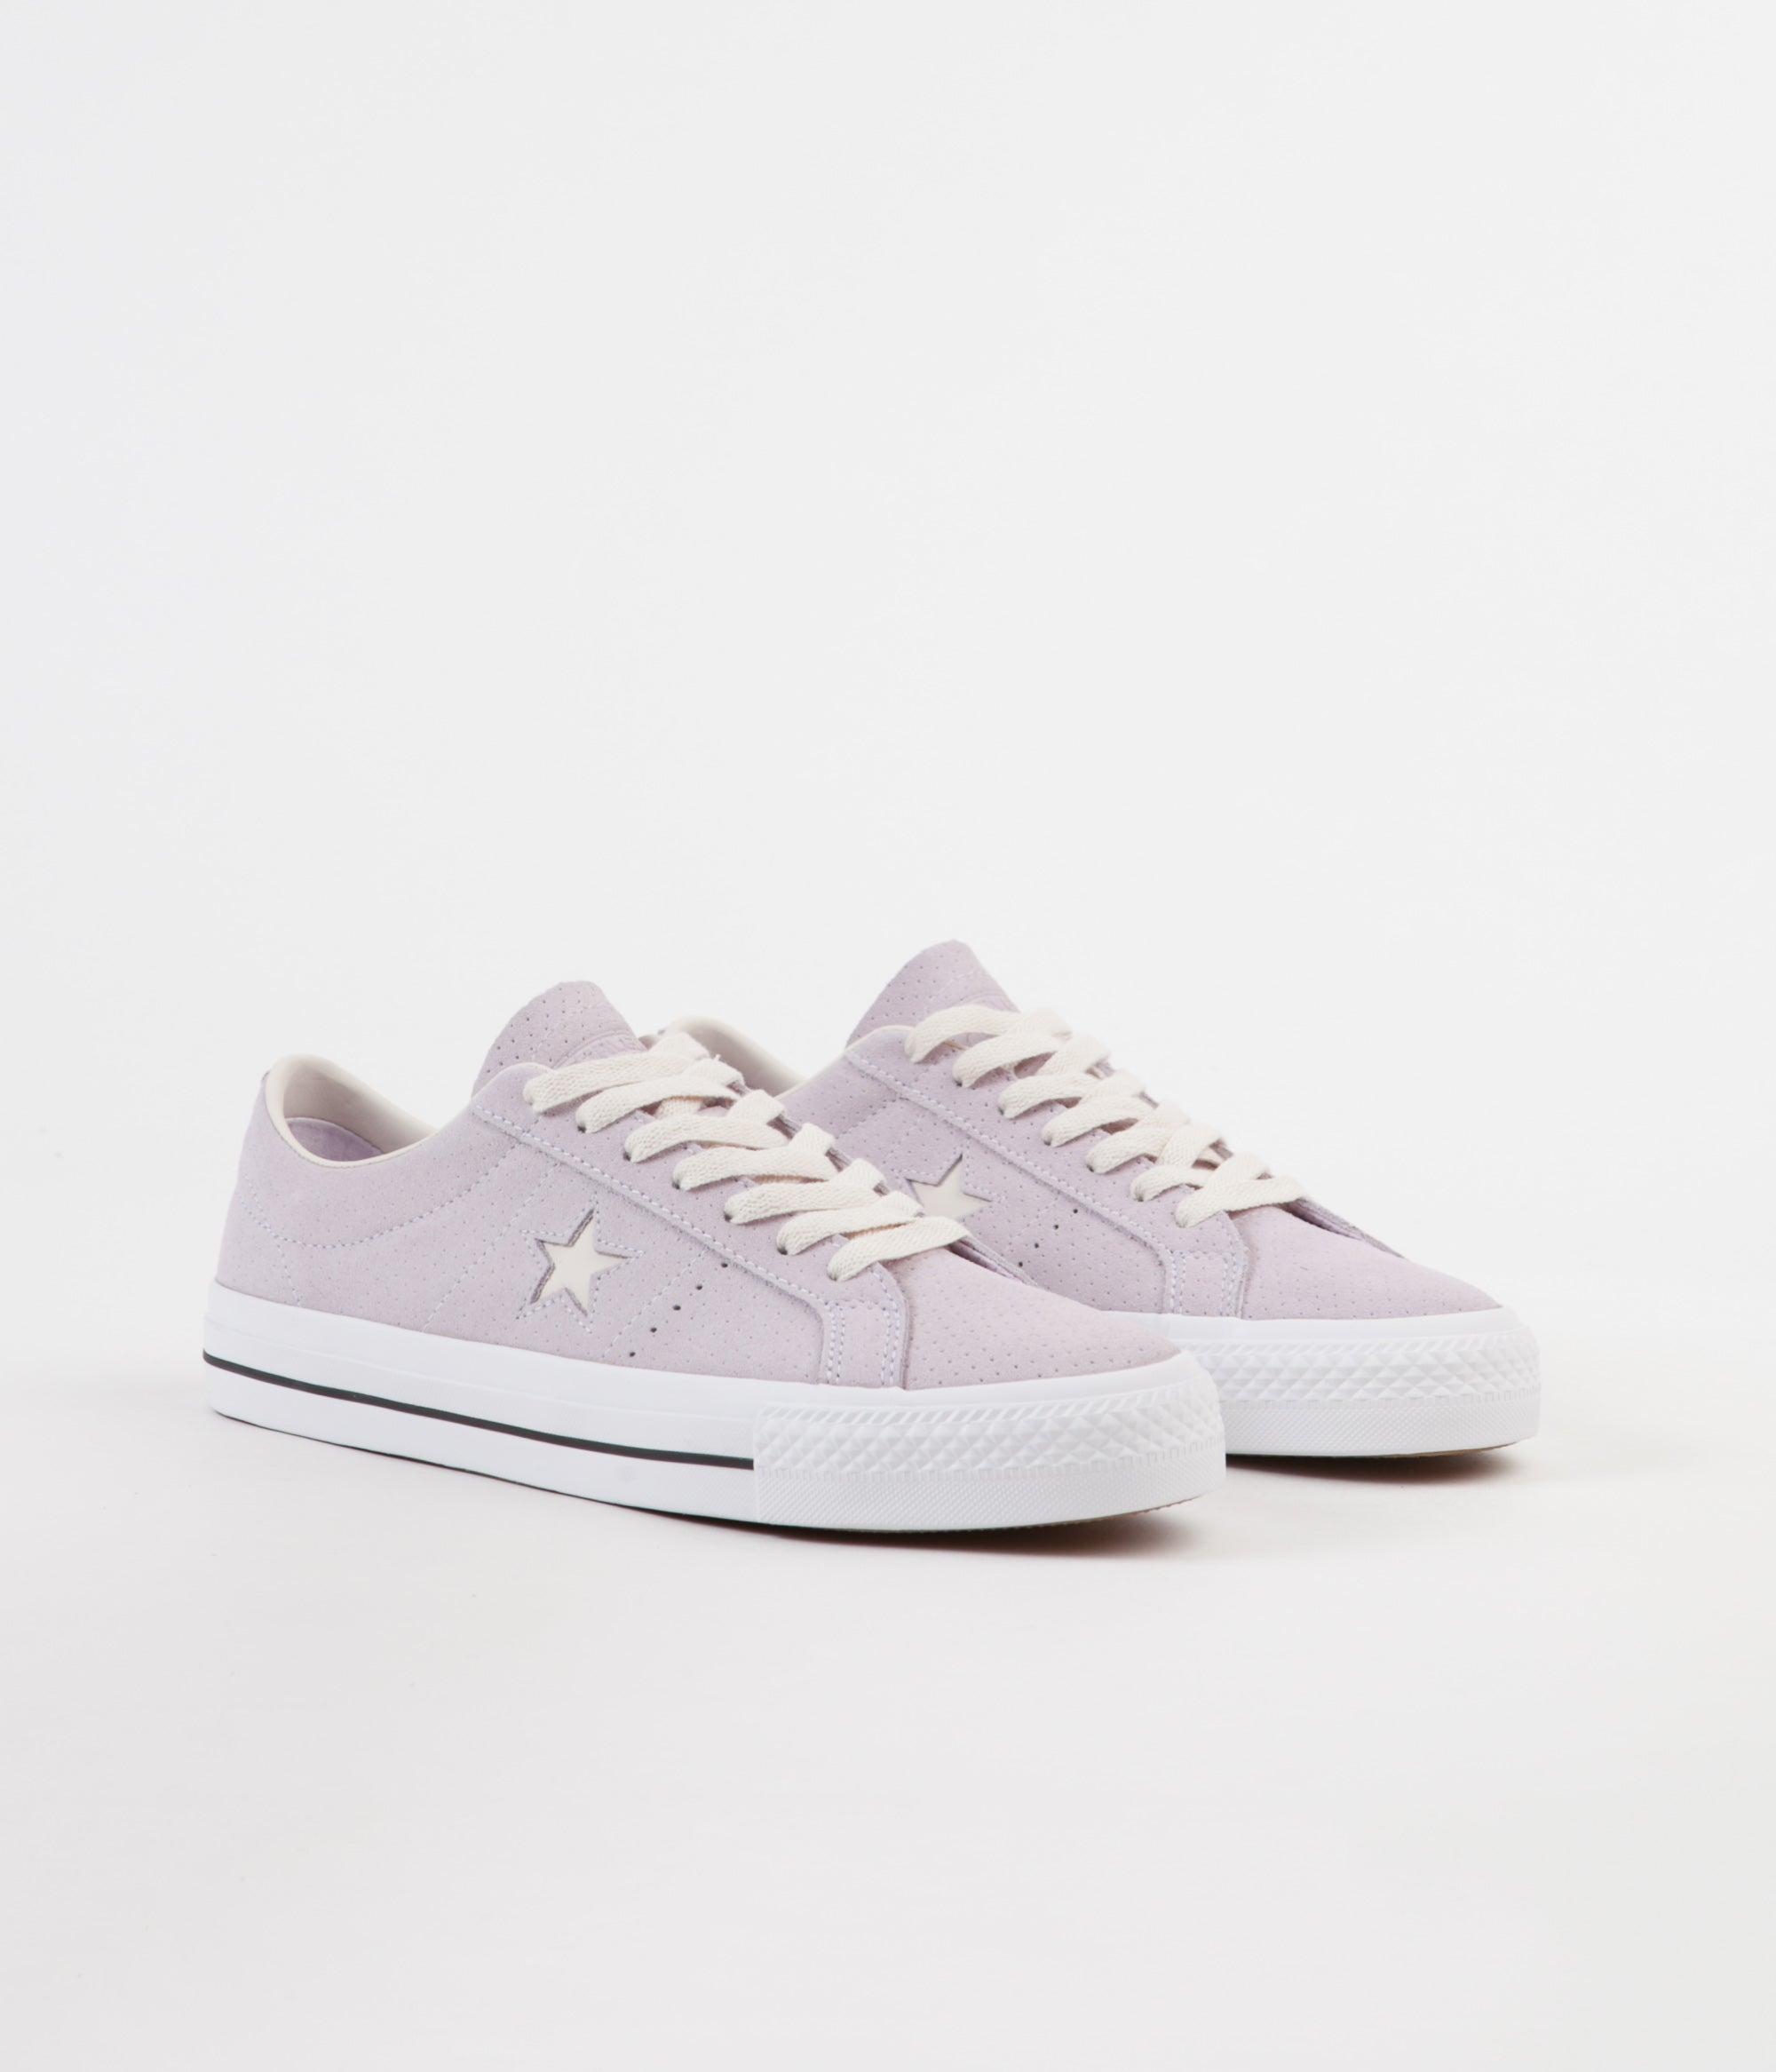 12c22b2c9561 ... Converse One Star Pro Ox Shoes - Barely Grape   Driftwood ...